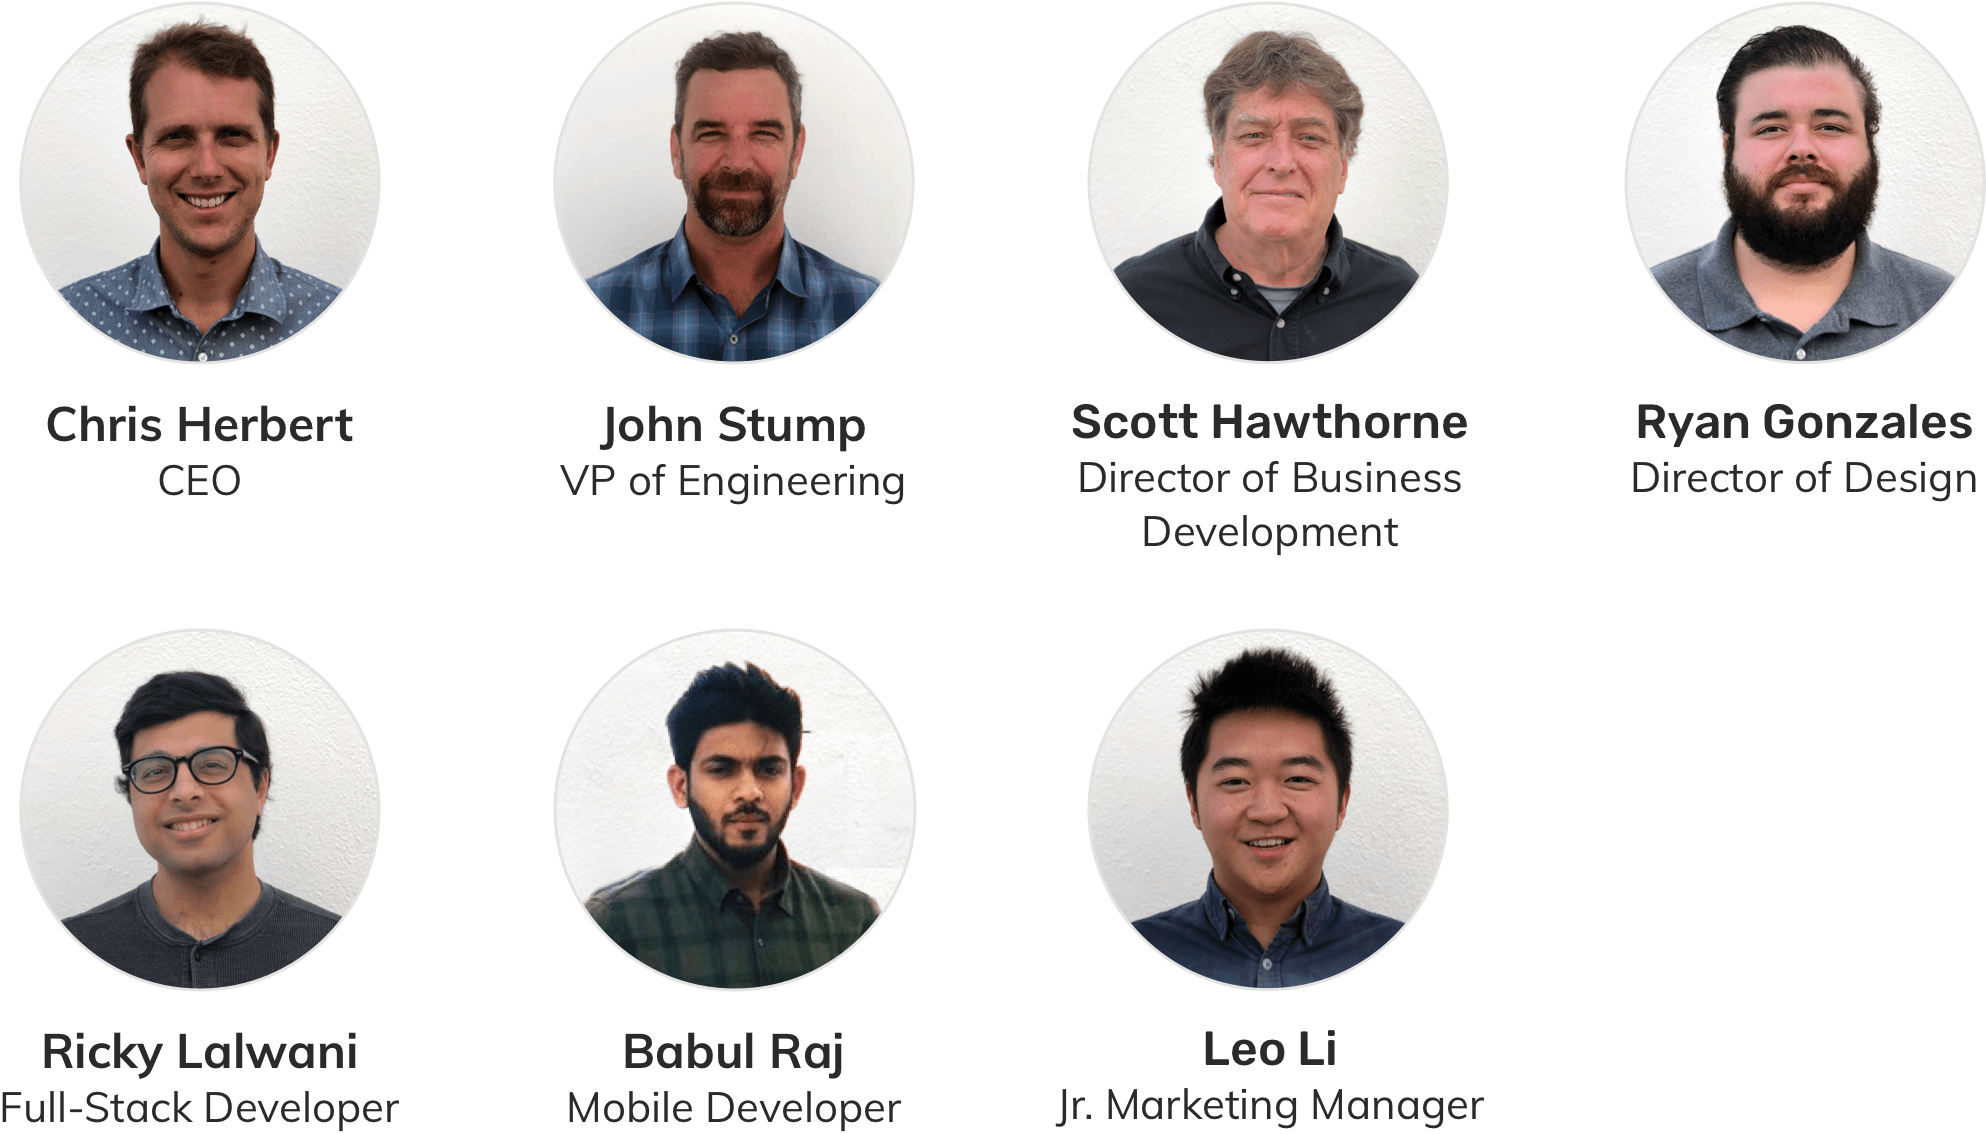 Chris Herbert - CEO, John Stump - VP of Engineering, Scott Hawthorne - Director of Business Development, Ryan Gonzales - Director of Design, Ricky Lalwani - Full-Stack Developer, Babul Raj - Mobile Developer, Leo Li - Junior Marketing Manager. Venture Backed by Mucker Capital and Entrada Ventures